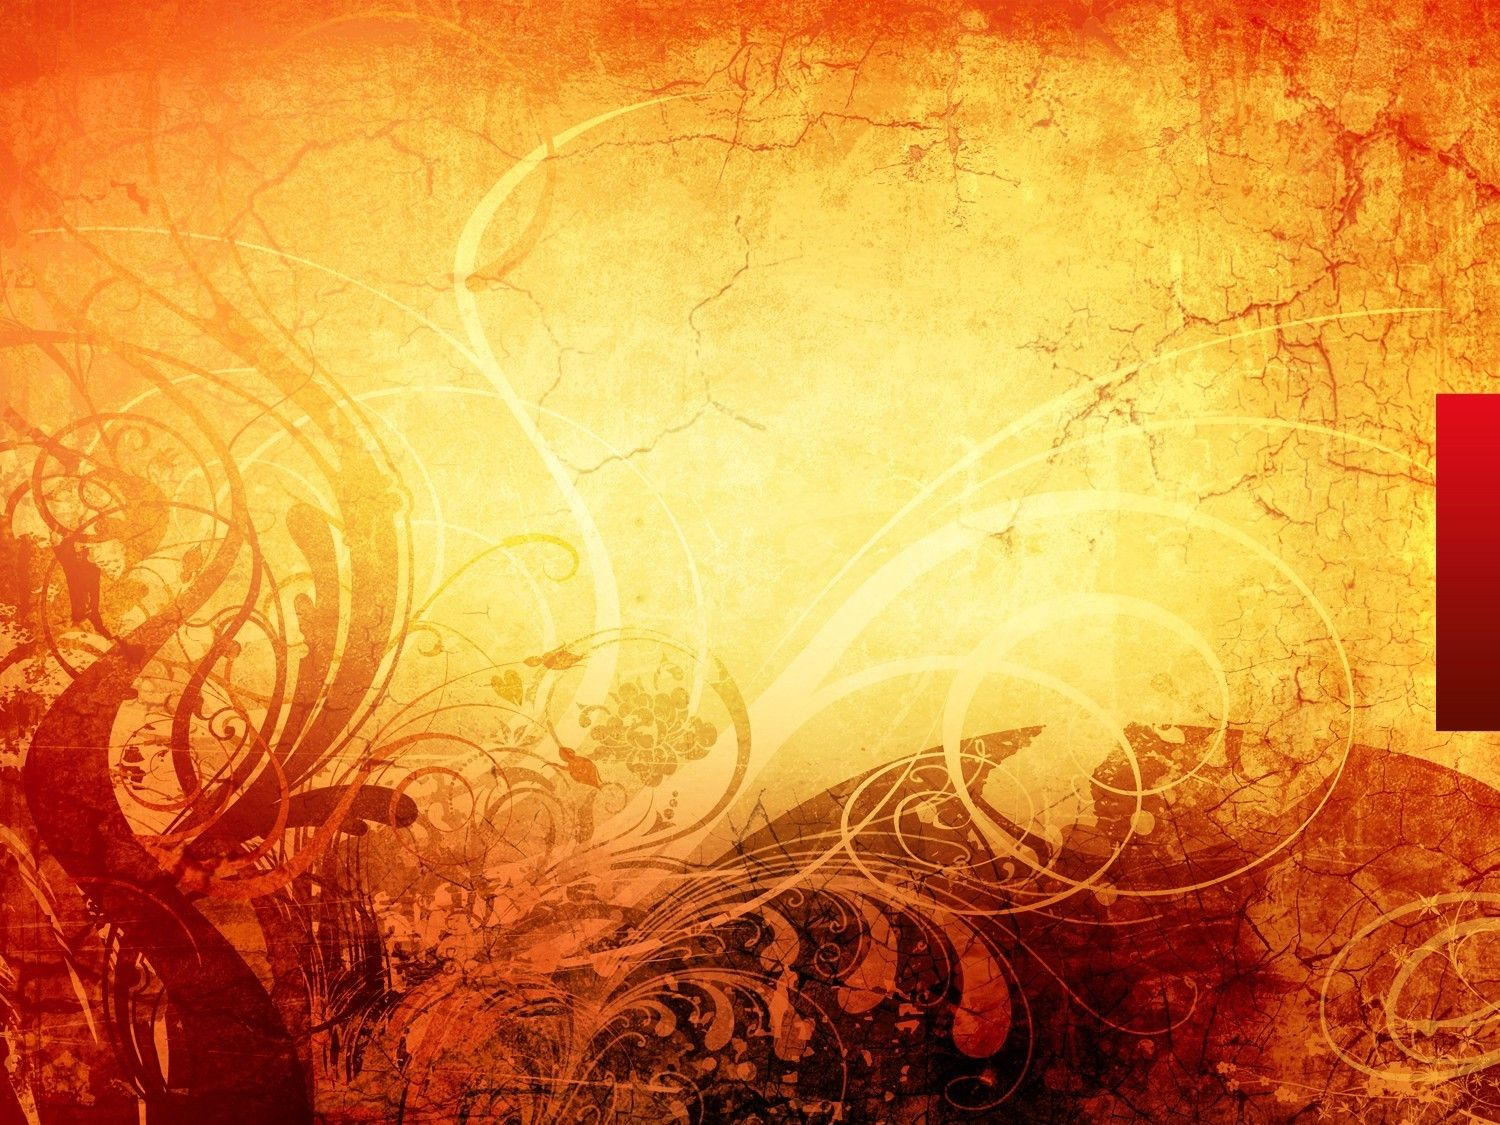 Love Emptiness Wallpaper : worship backgrounds Swirling_Vines_Worship_Background ...